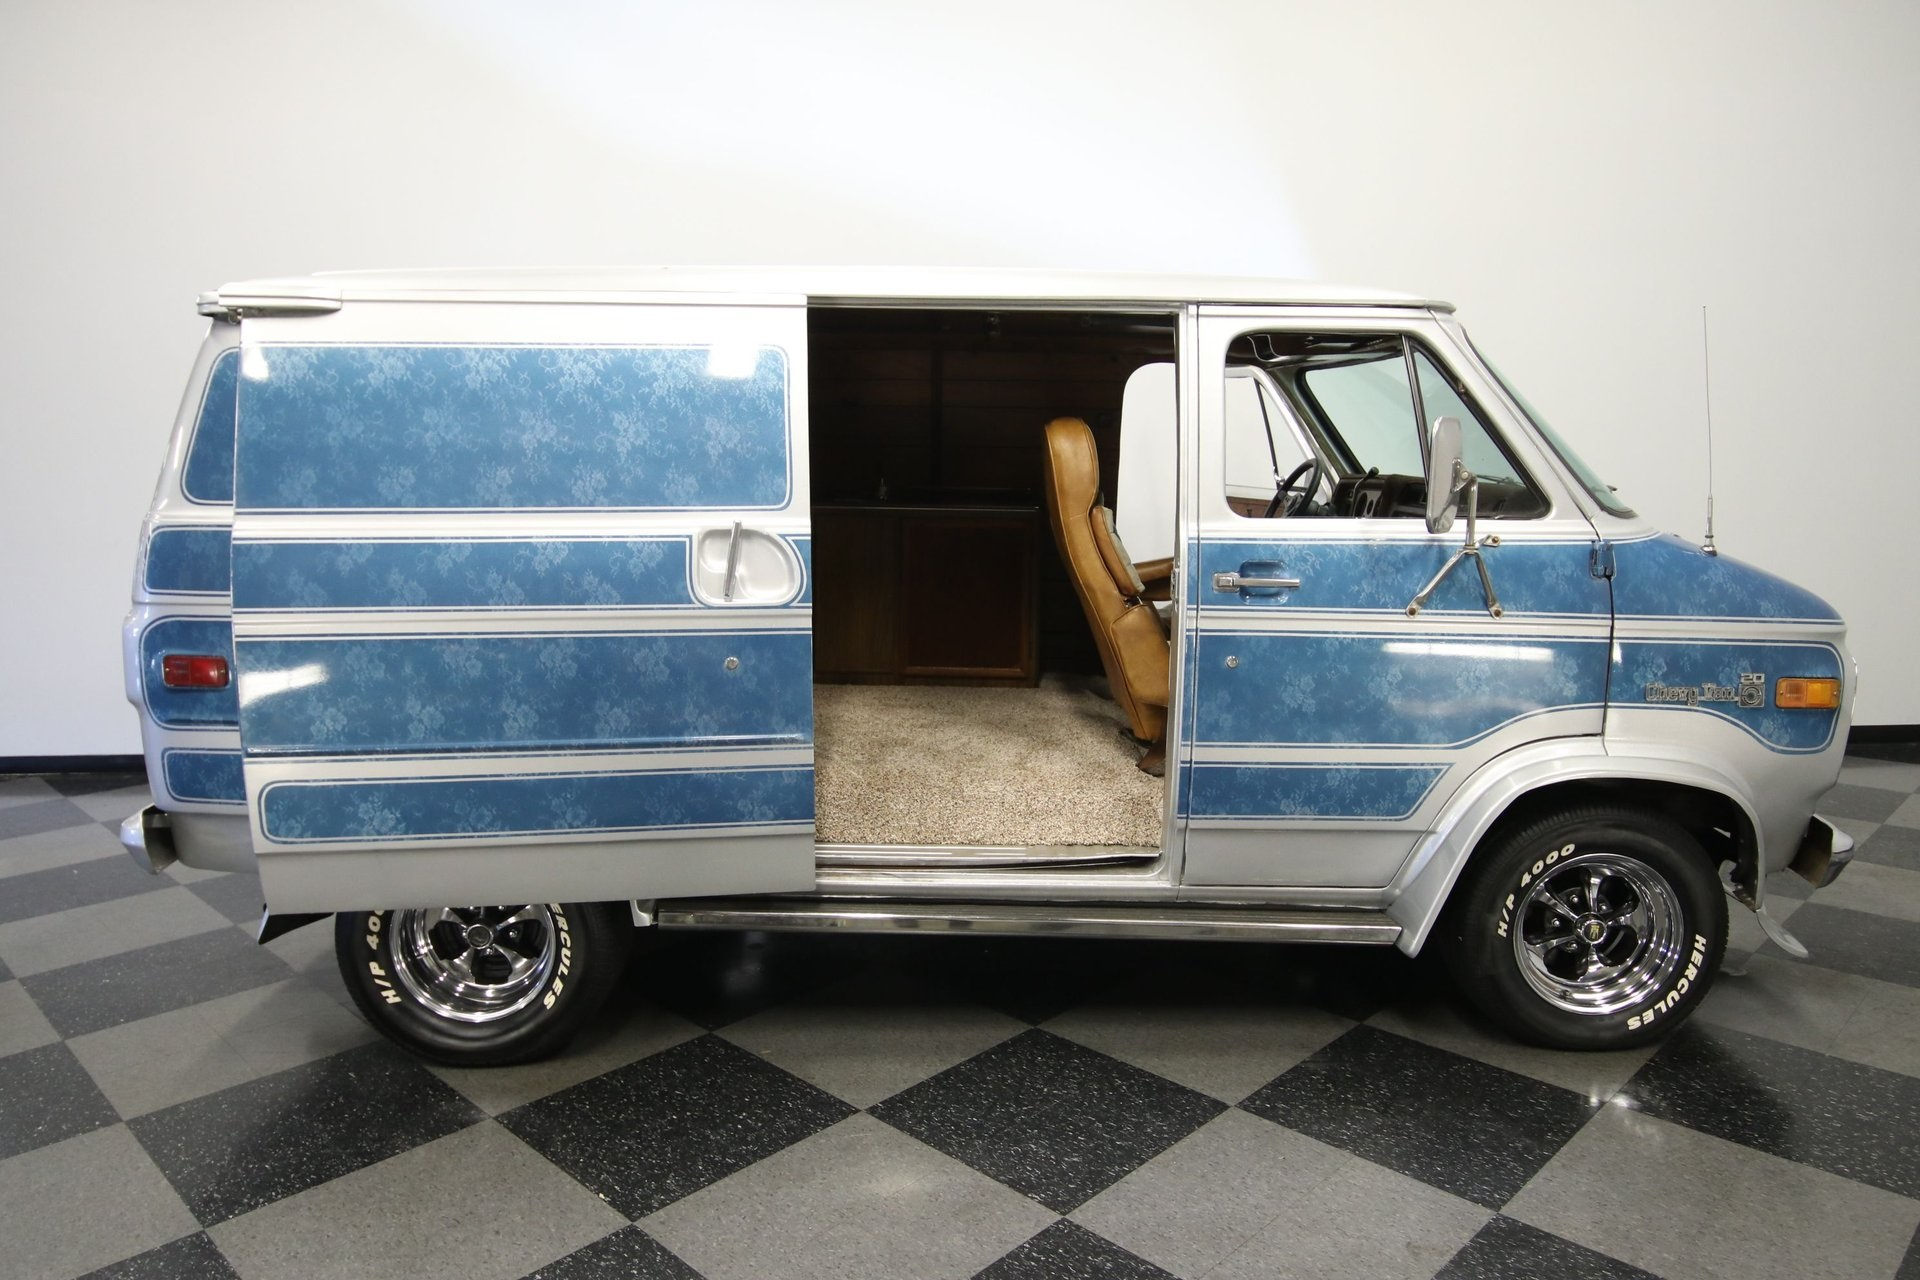 1977-chevrolet-g20-shorty-van-rddj25